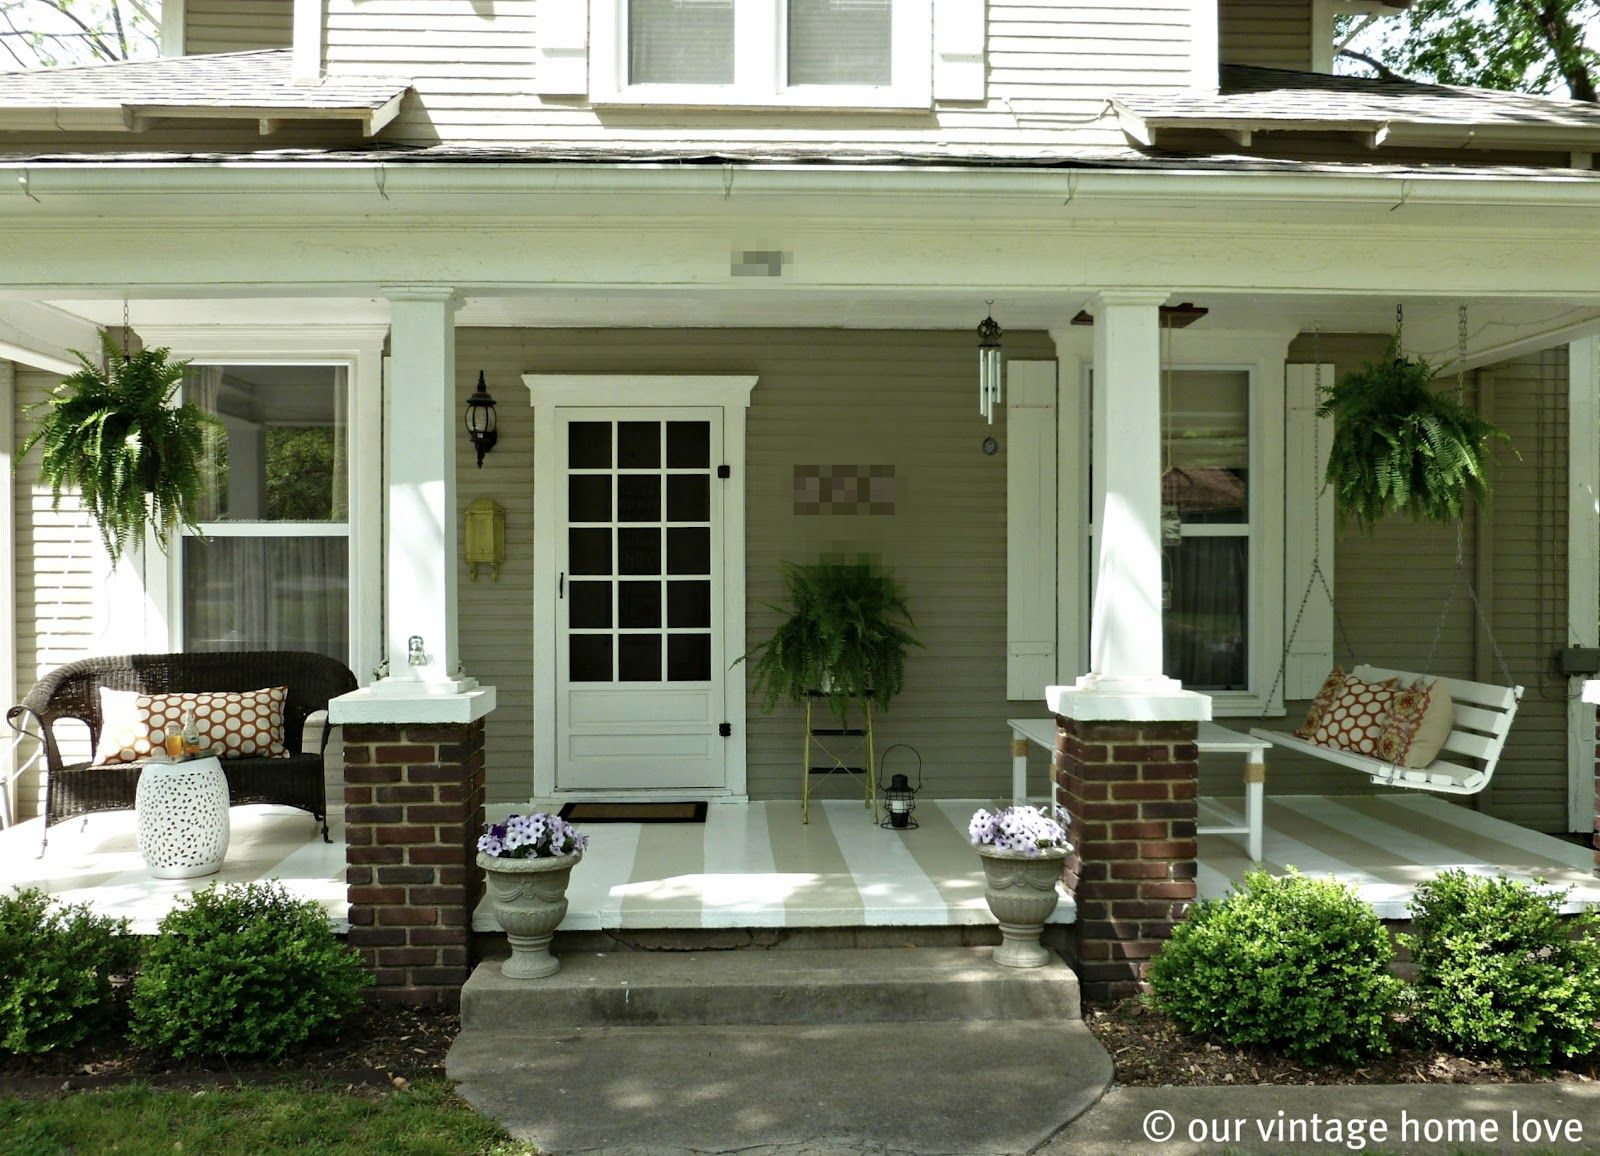 landscaping ideas for front of house with porch | Spring/Summer ...